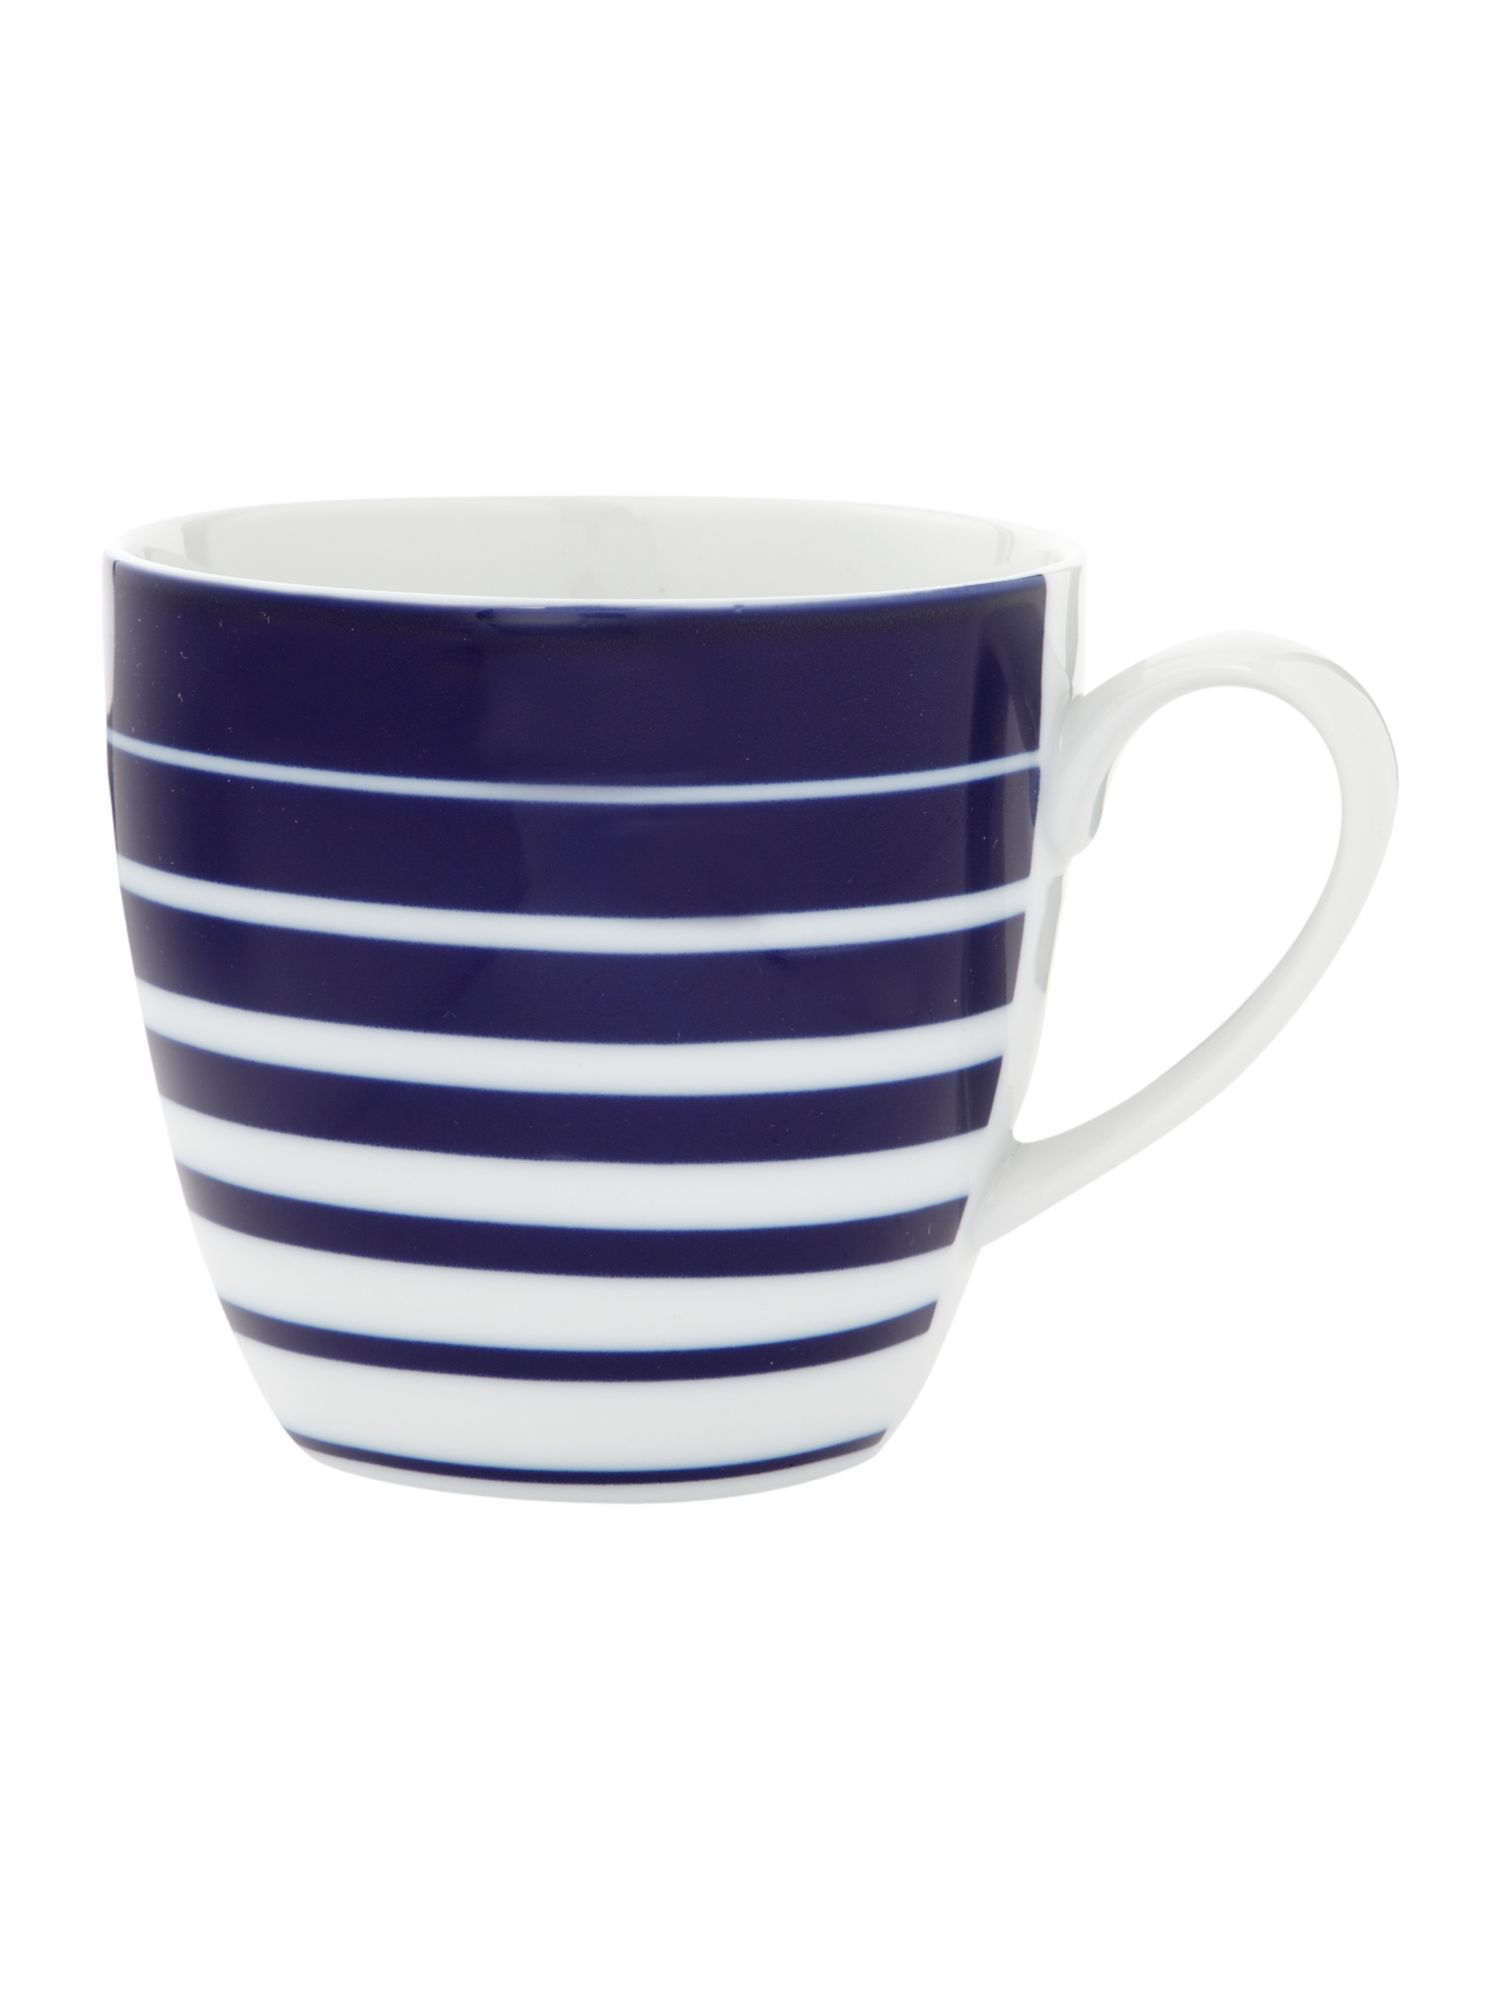 Pacific stripe mug